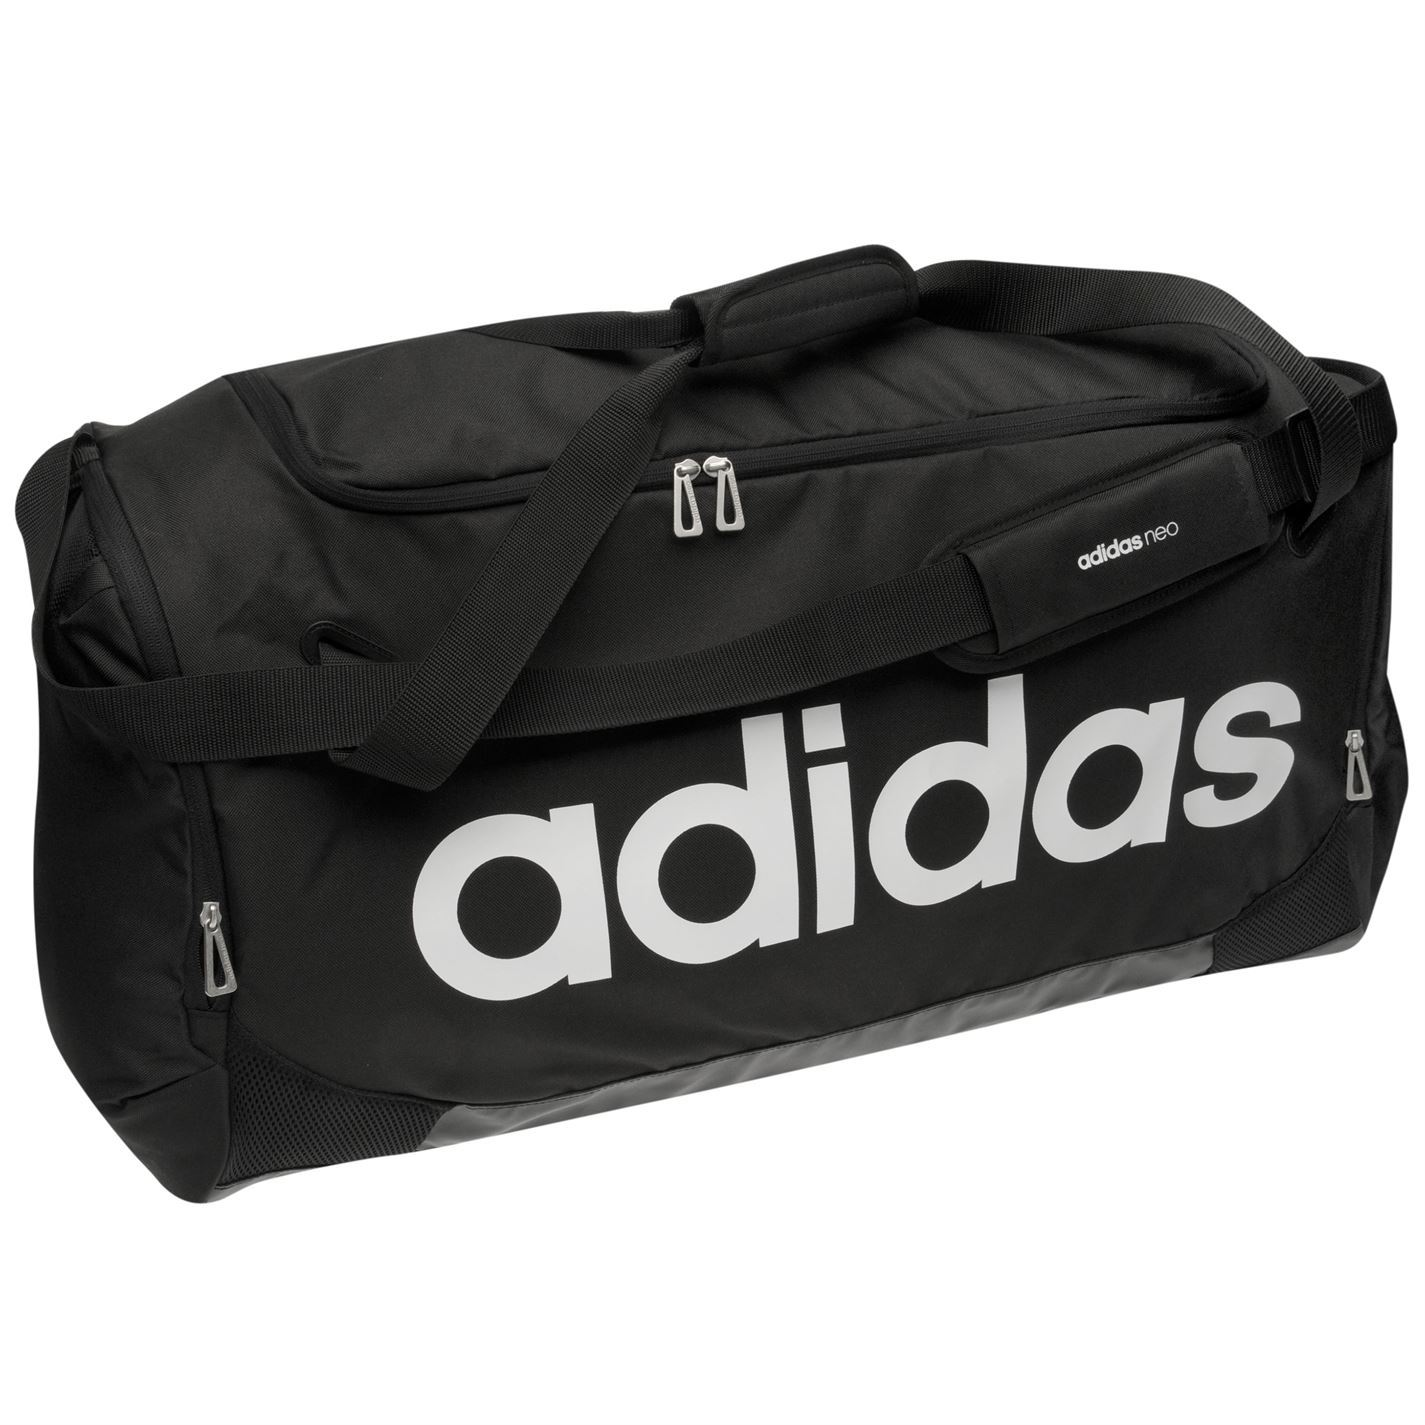 adidas linear team bag large black sports gymbag kitbag ebay. Black Bedroom Furniture Sets. Home Design Ideas